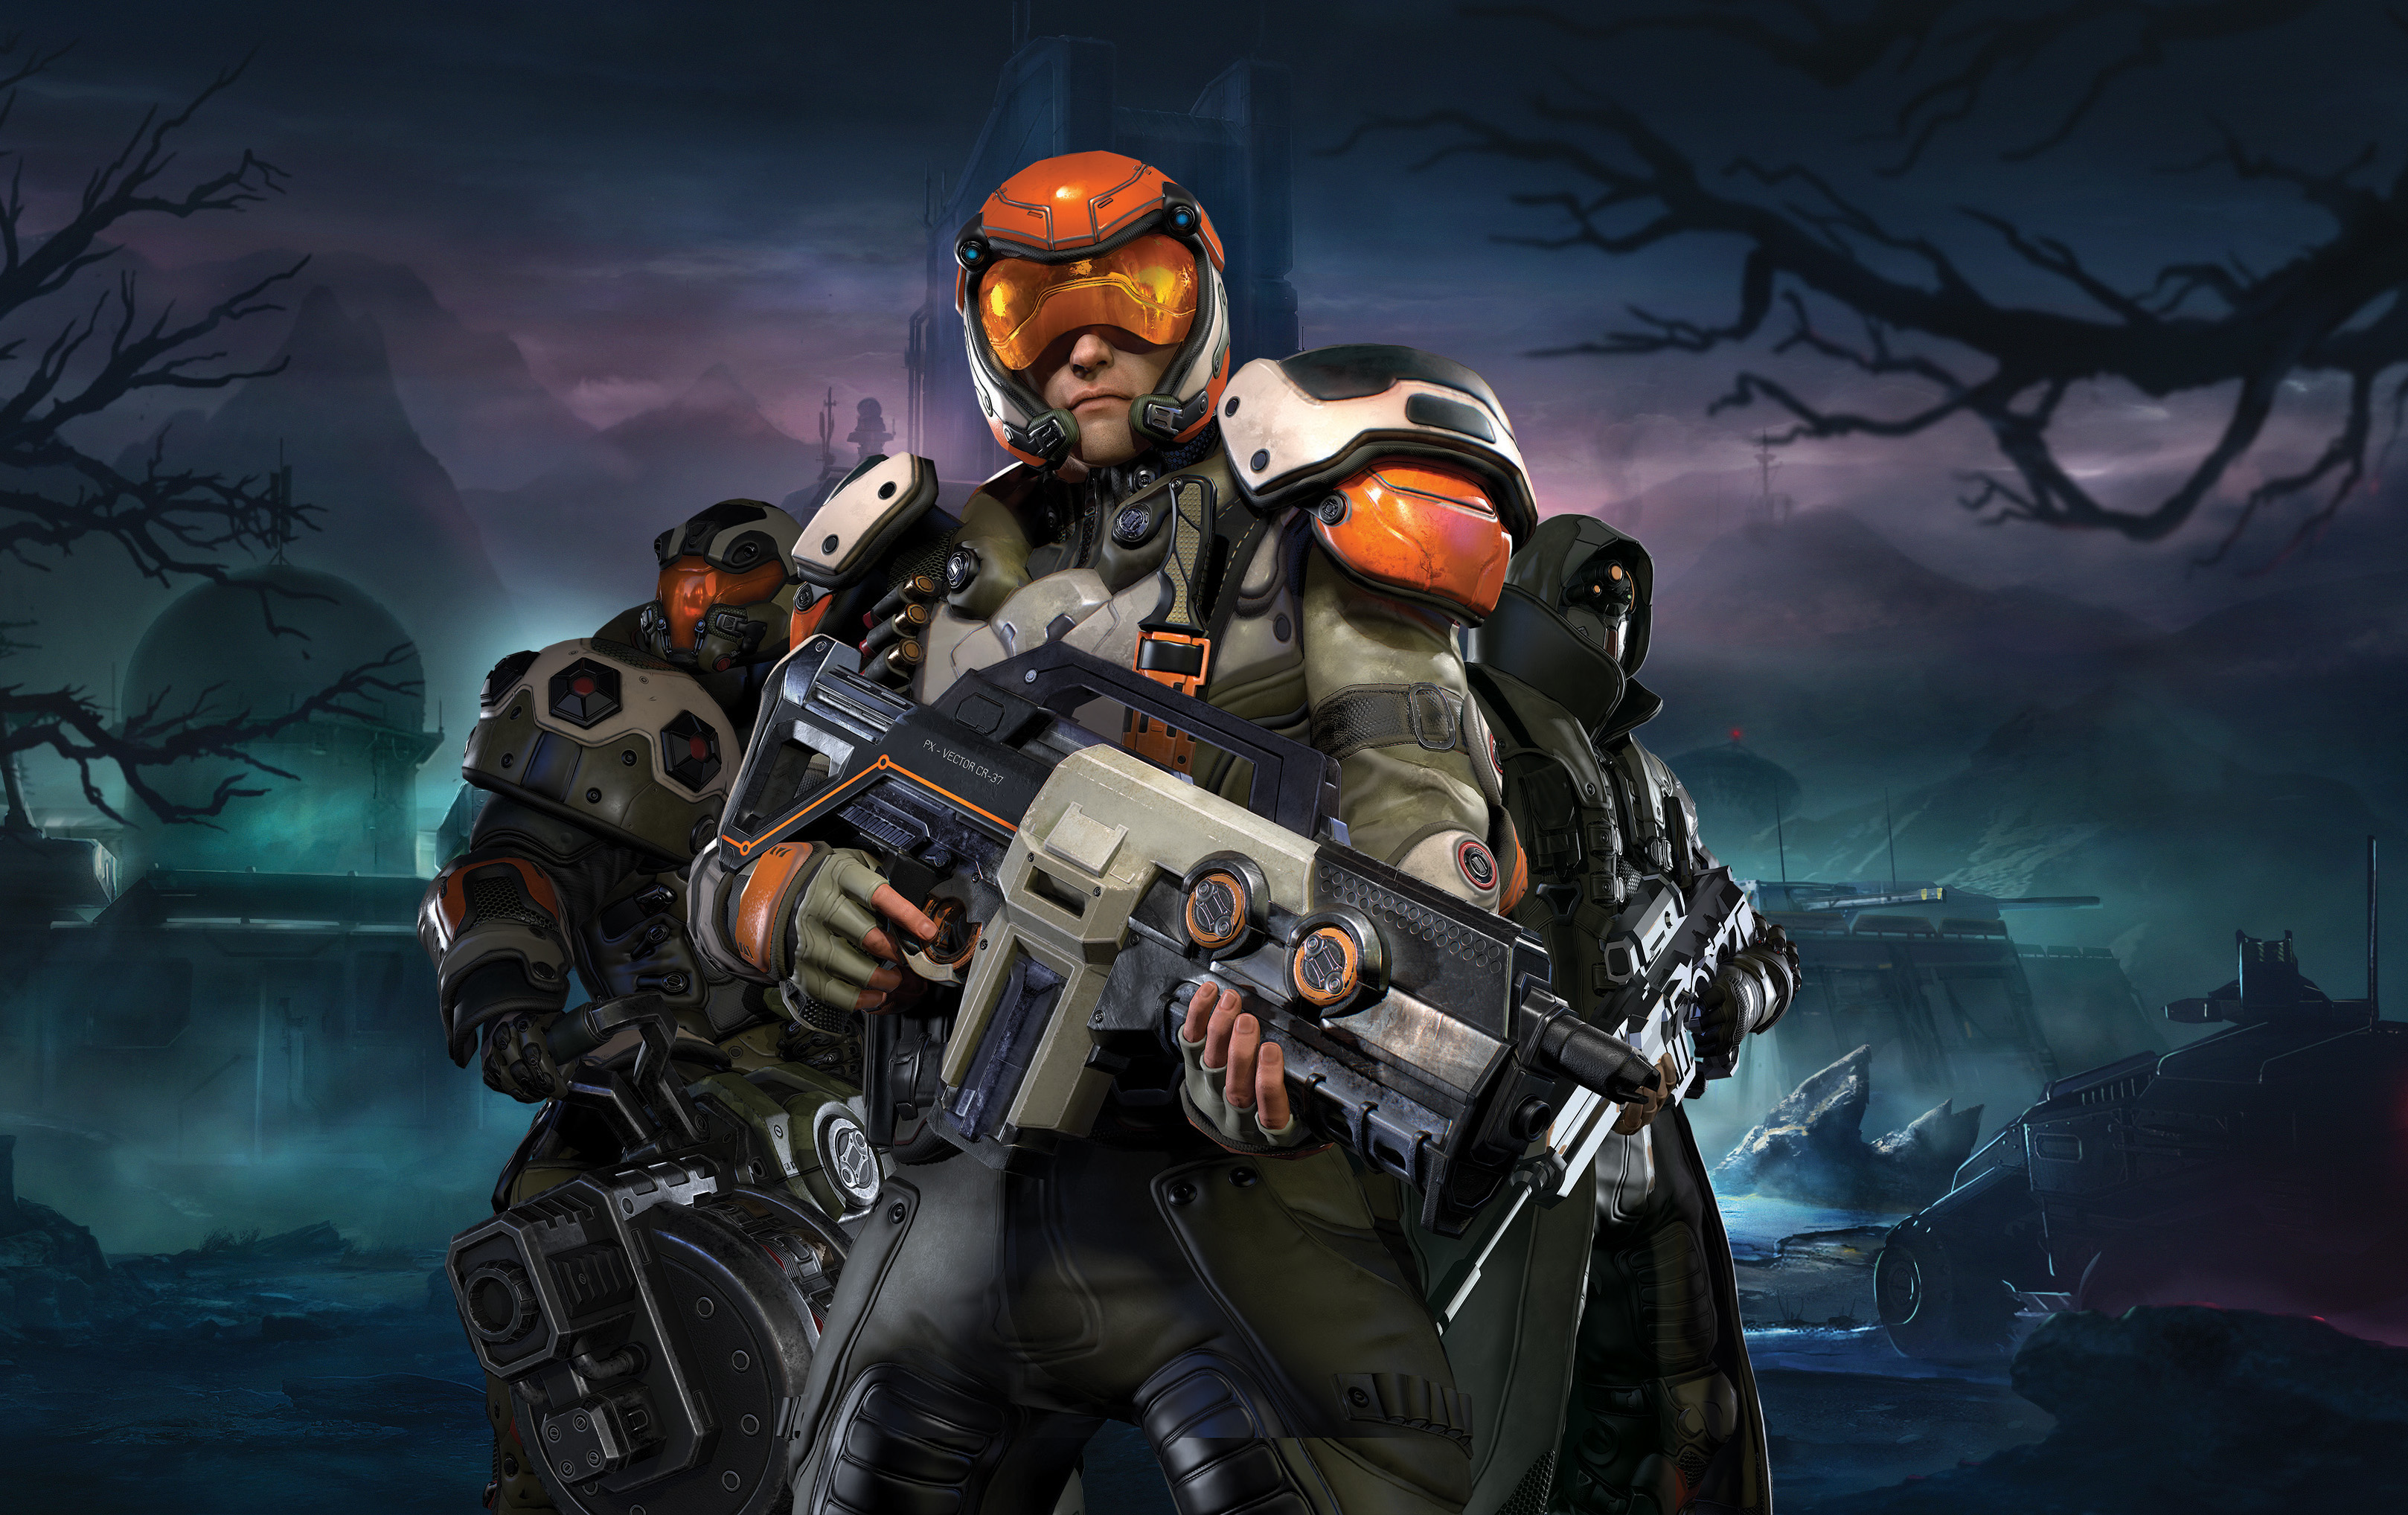 Phoenix Point is X-COM creator Julian Gollop's vision of a grand strategy game